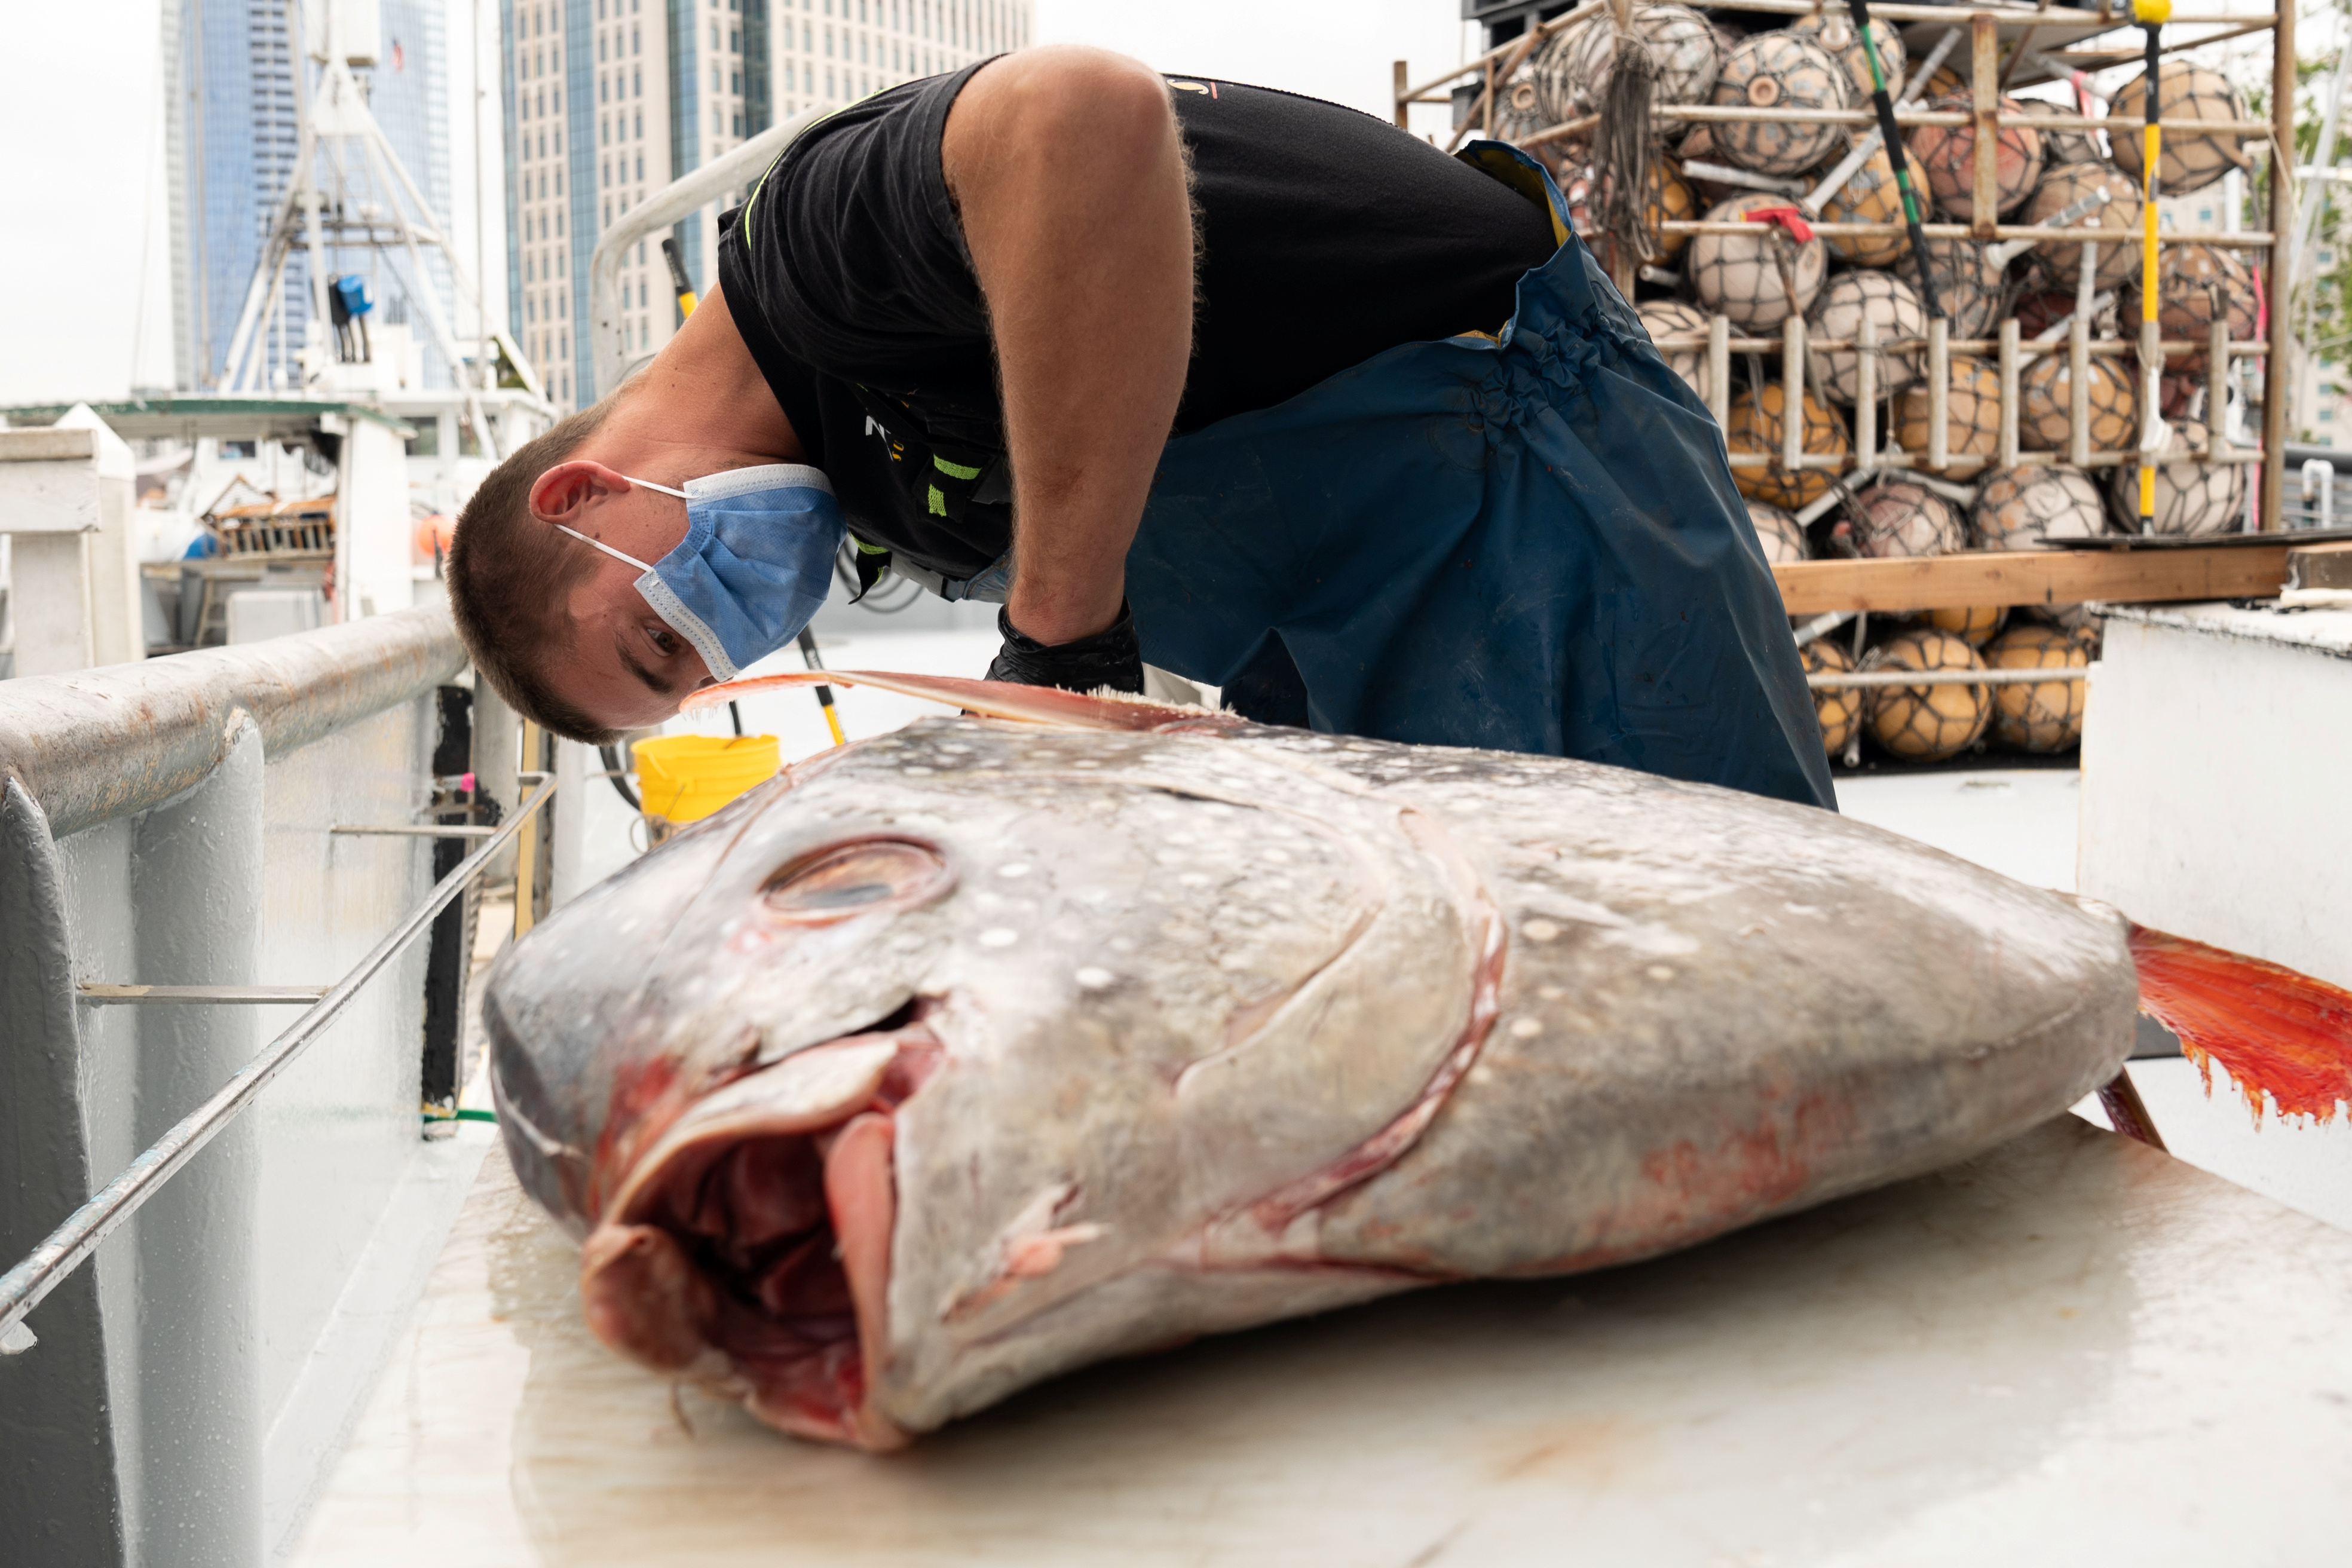 Commercial fisherman Ben Stephens cuts an opah fish onboard the Gutsy Lady 4, a fishing vessel, docked in Tuna Harbor in San Diego, Calif., U.S., on April, 2020. (Bing Guan/ Reuters)